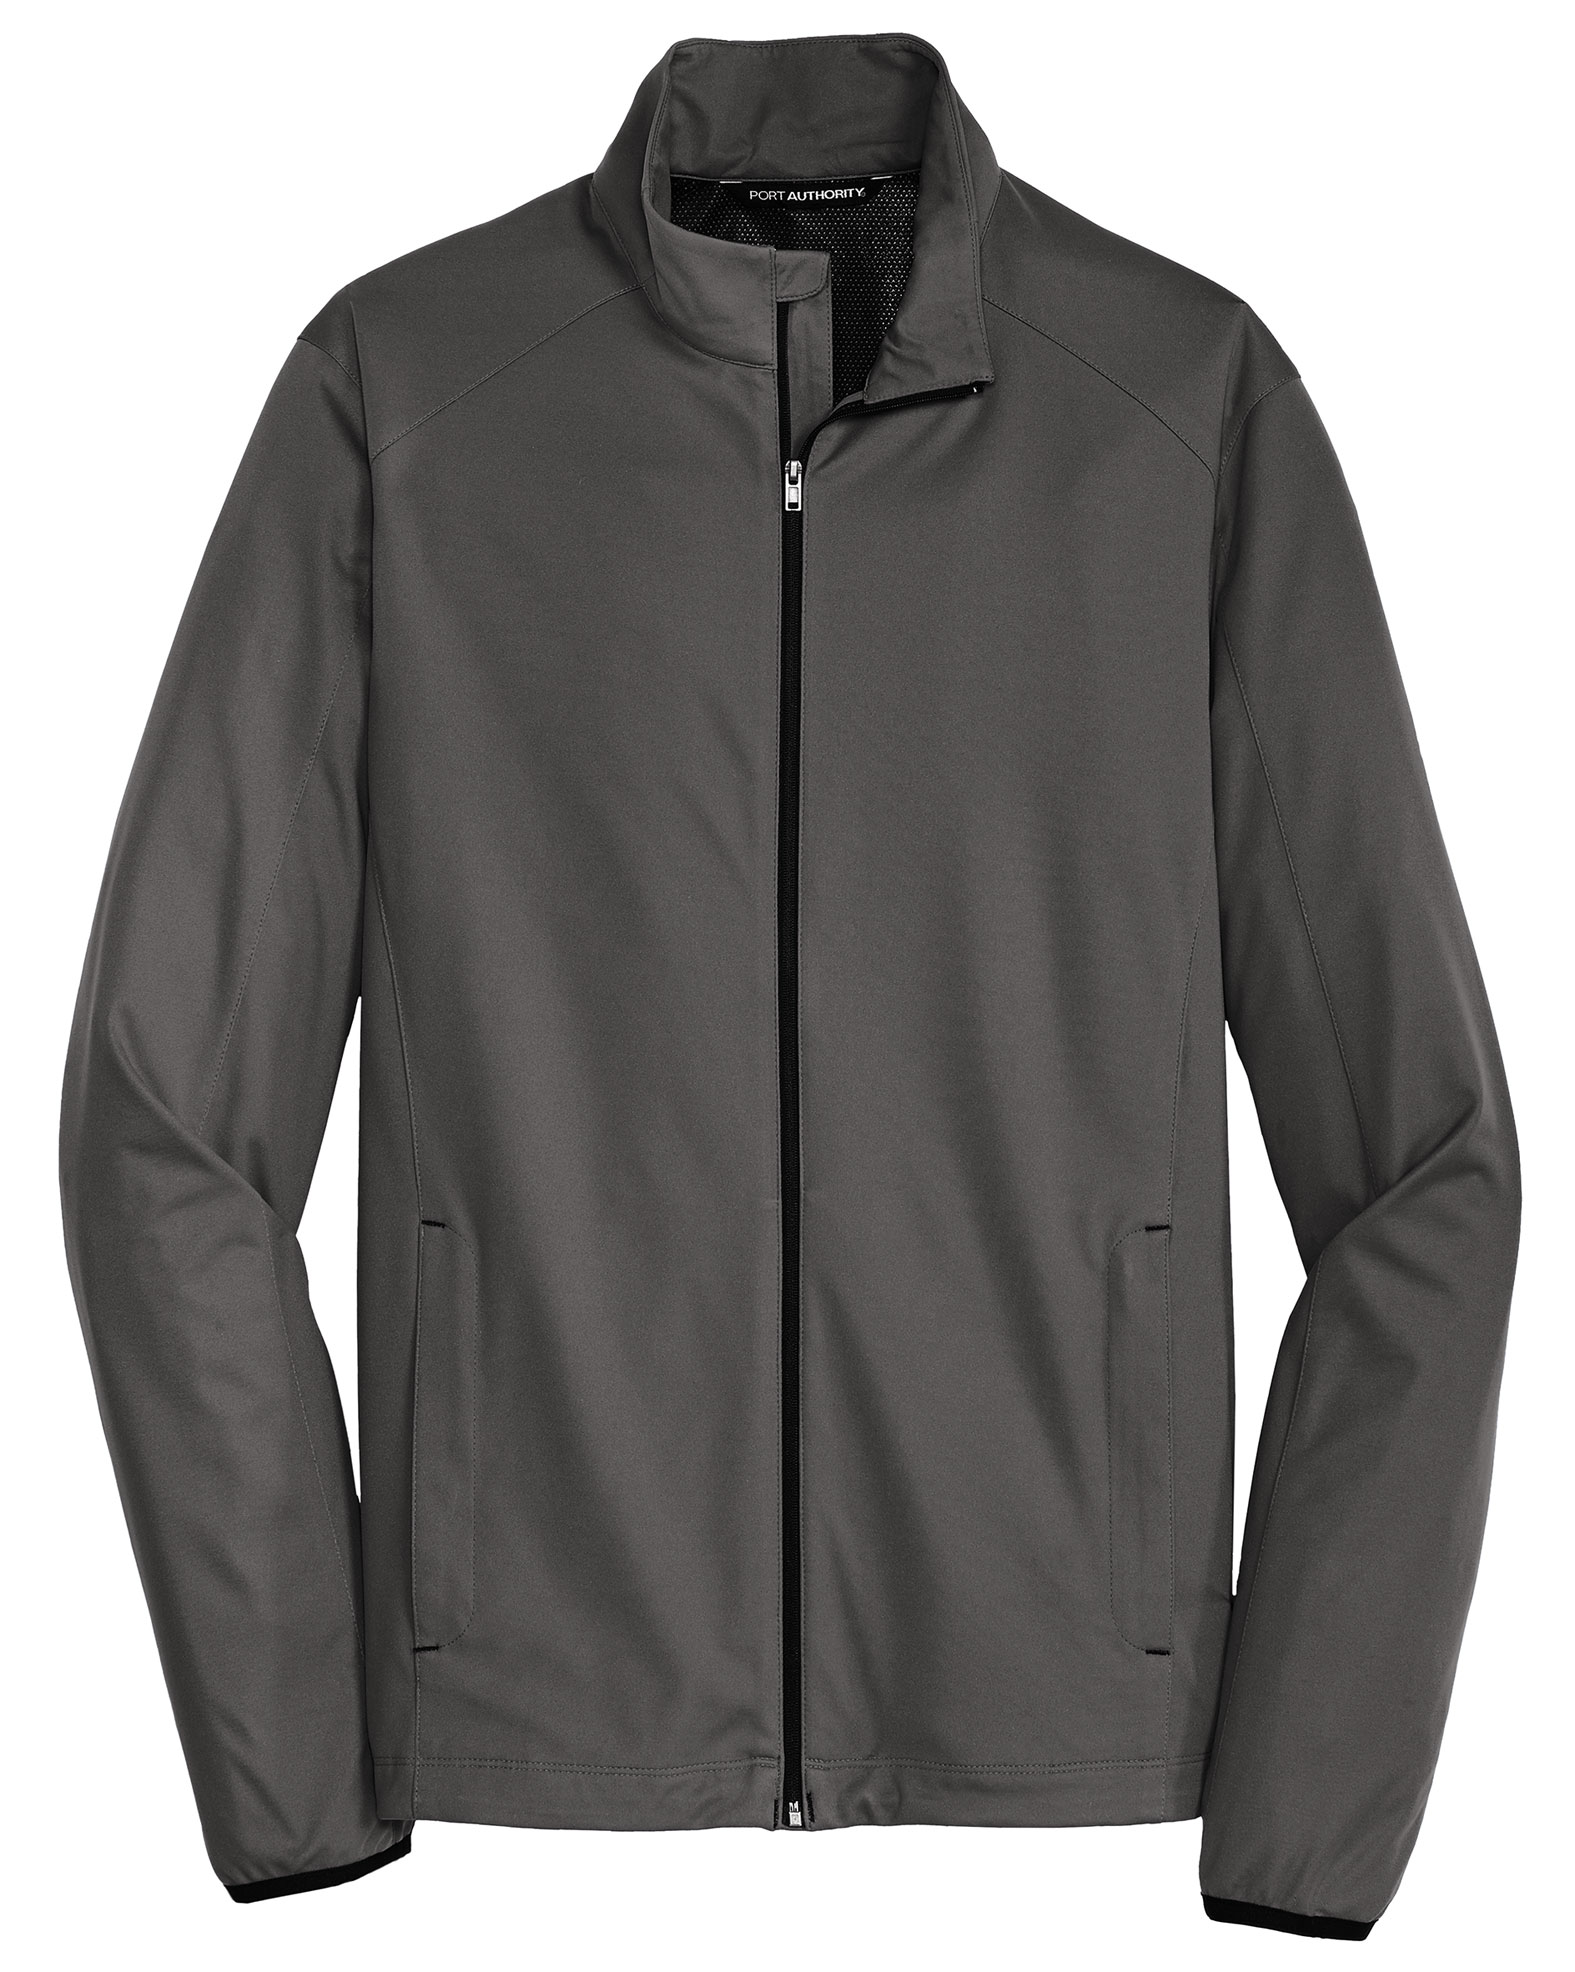 Port Authority Mens Active Soft Shell Jacket